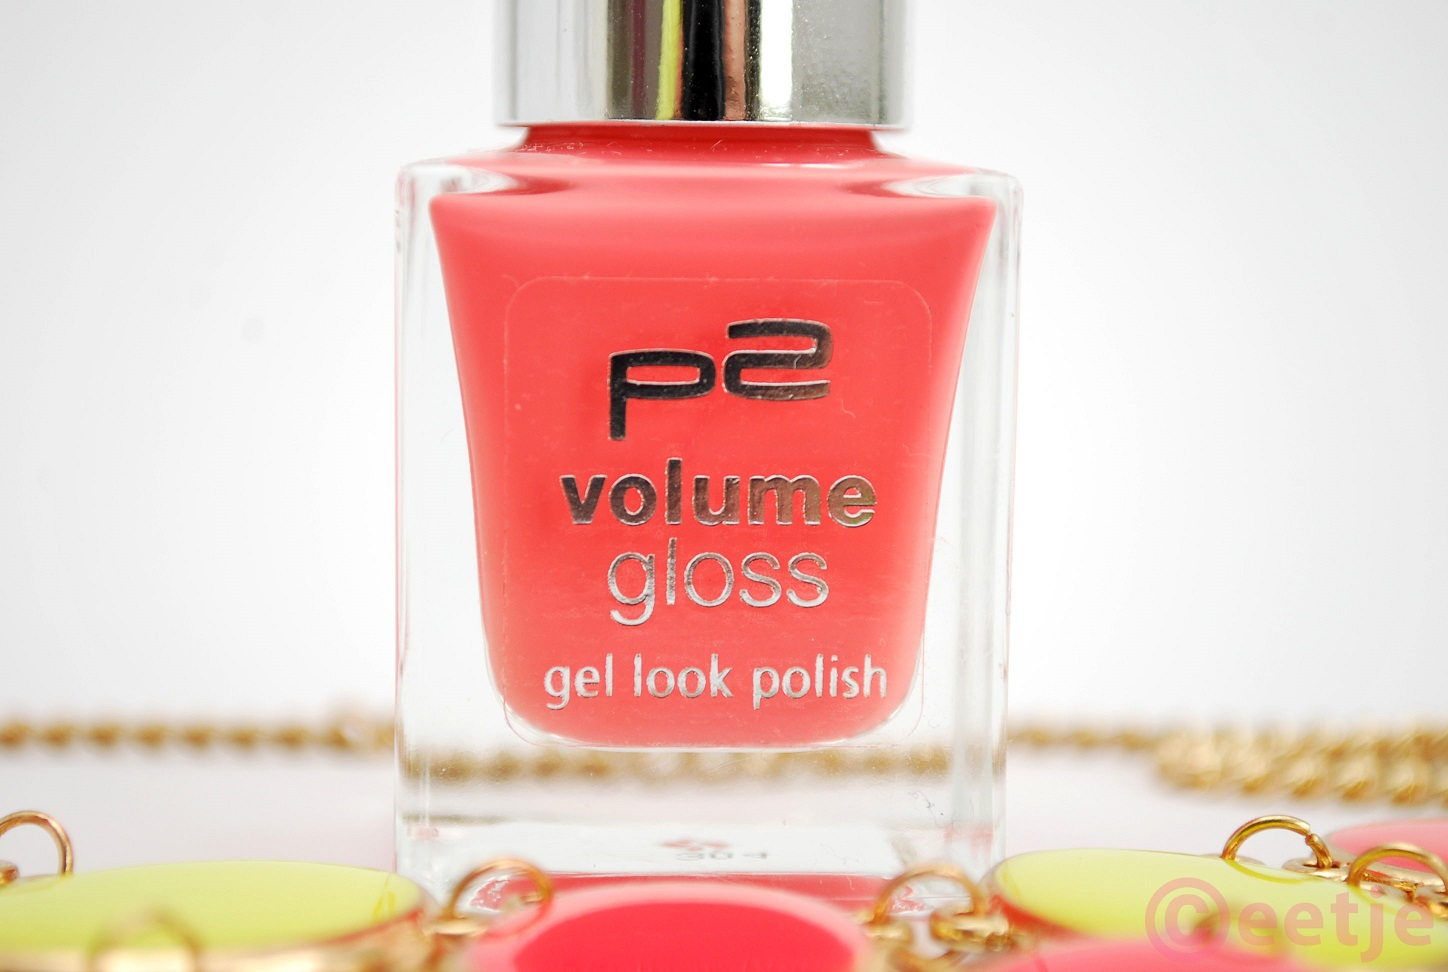 swatch P2 nagellak volume gloss happy bride 060 review